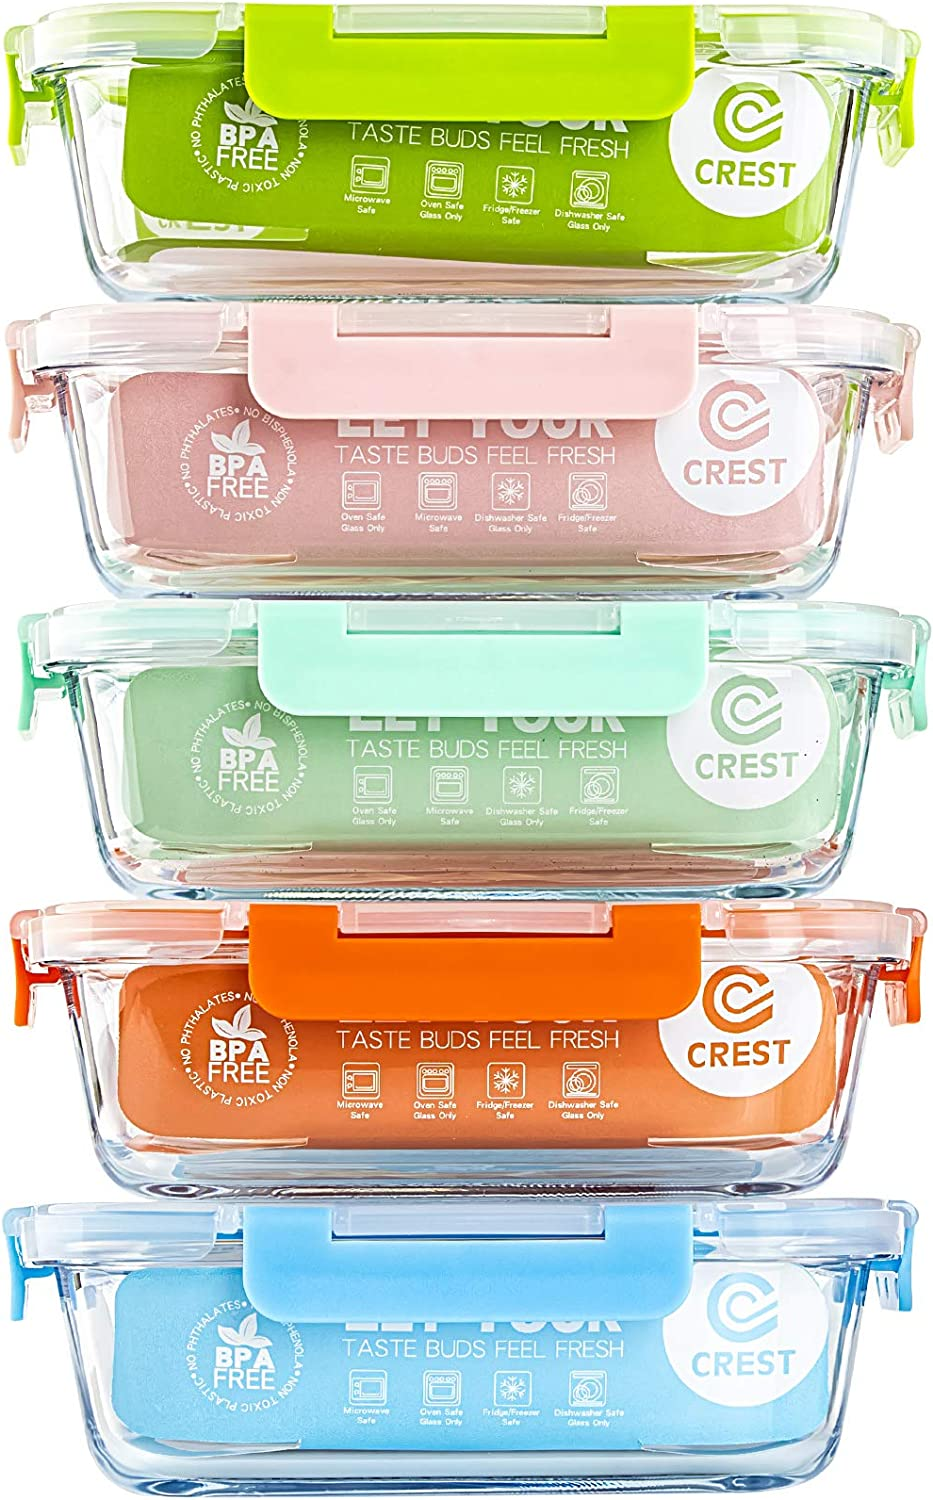 [5-Pack]Glass Lunch Box, Meal Prep Glass Containers with Lids, Glass Food Storage Containers, 34 OZ